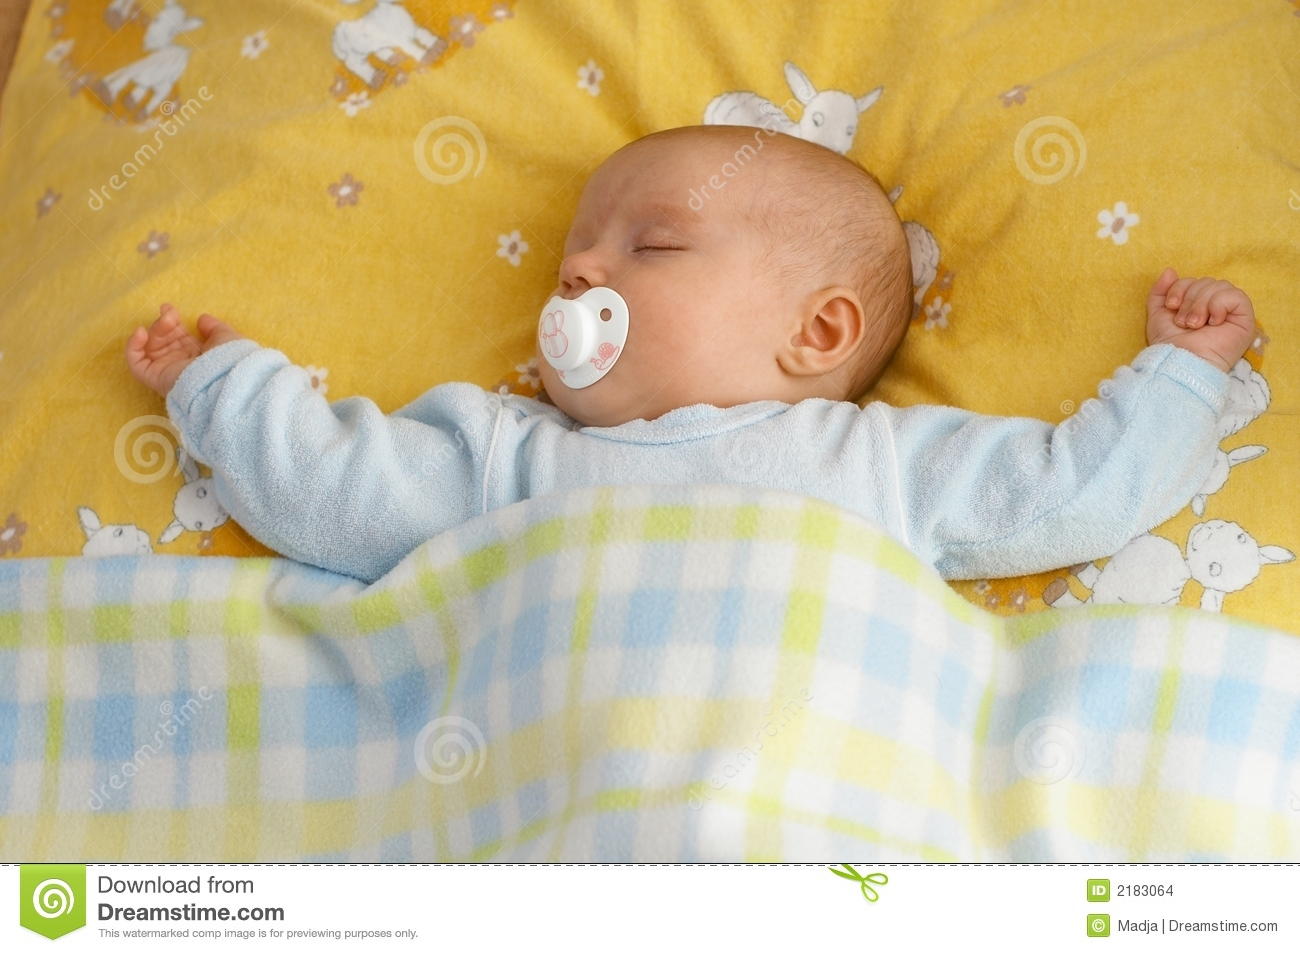 Baby In Crib Stock Images - Image: 2183064